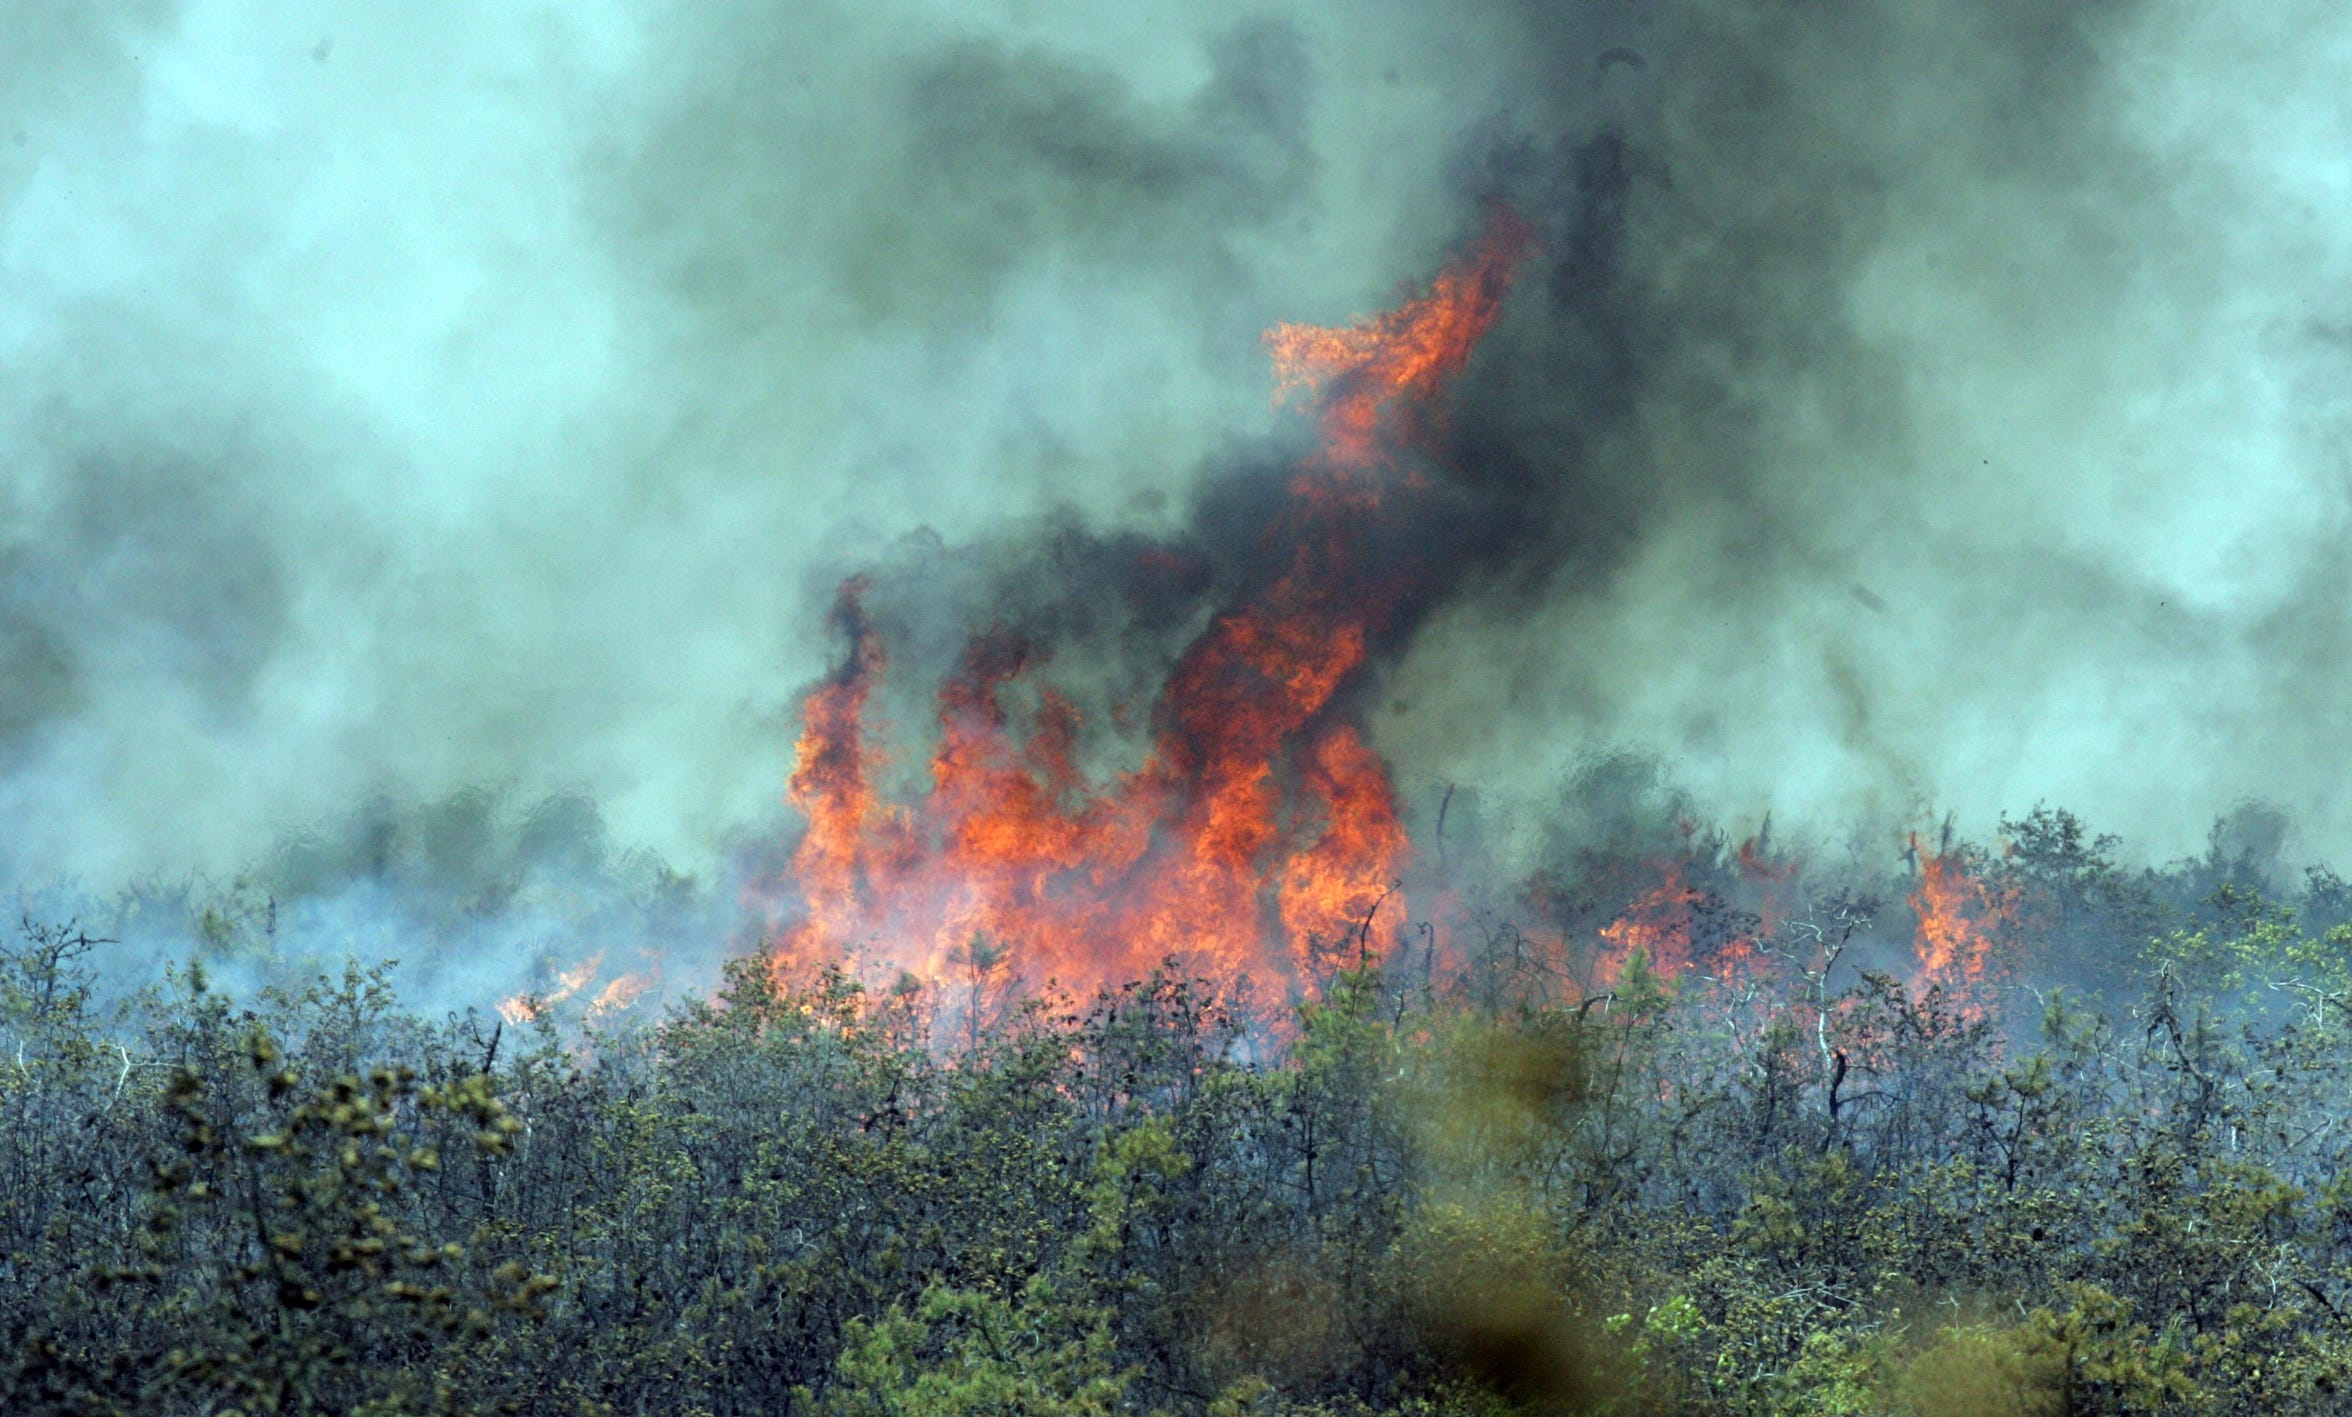 Tim McCarthy/staff photographer 051607 - POCEAN - Fire burning at mid-day on the Warren Grove Range in 2007.